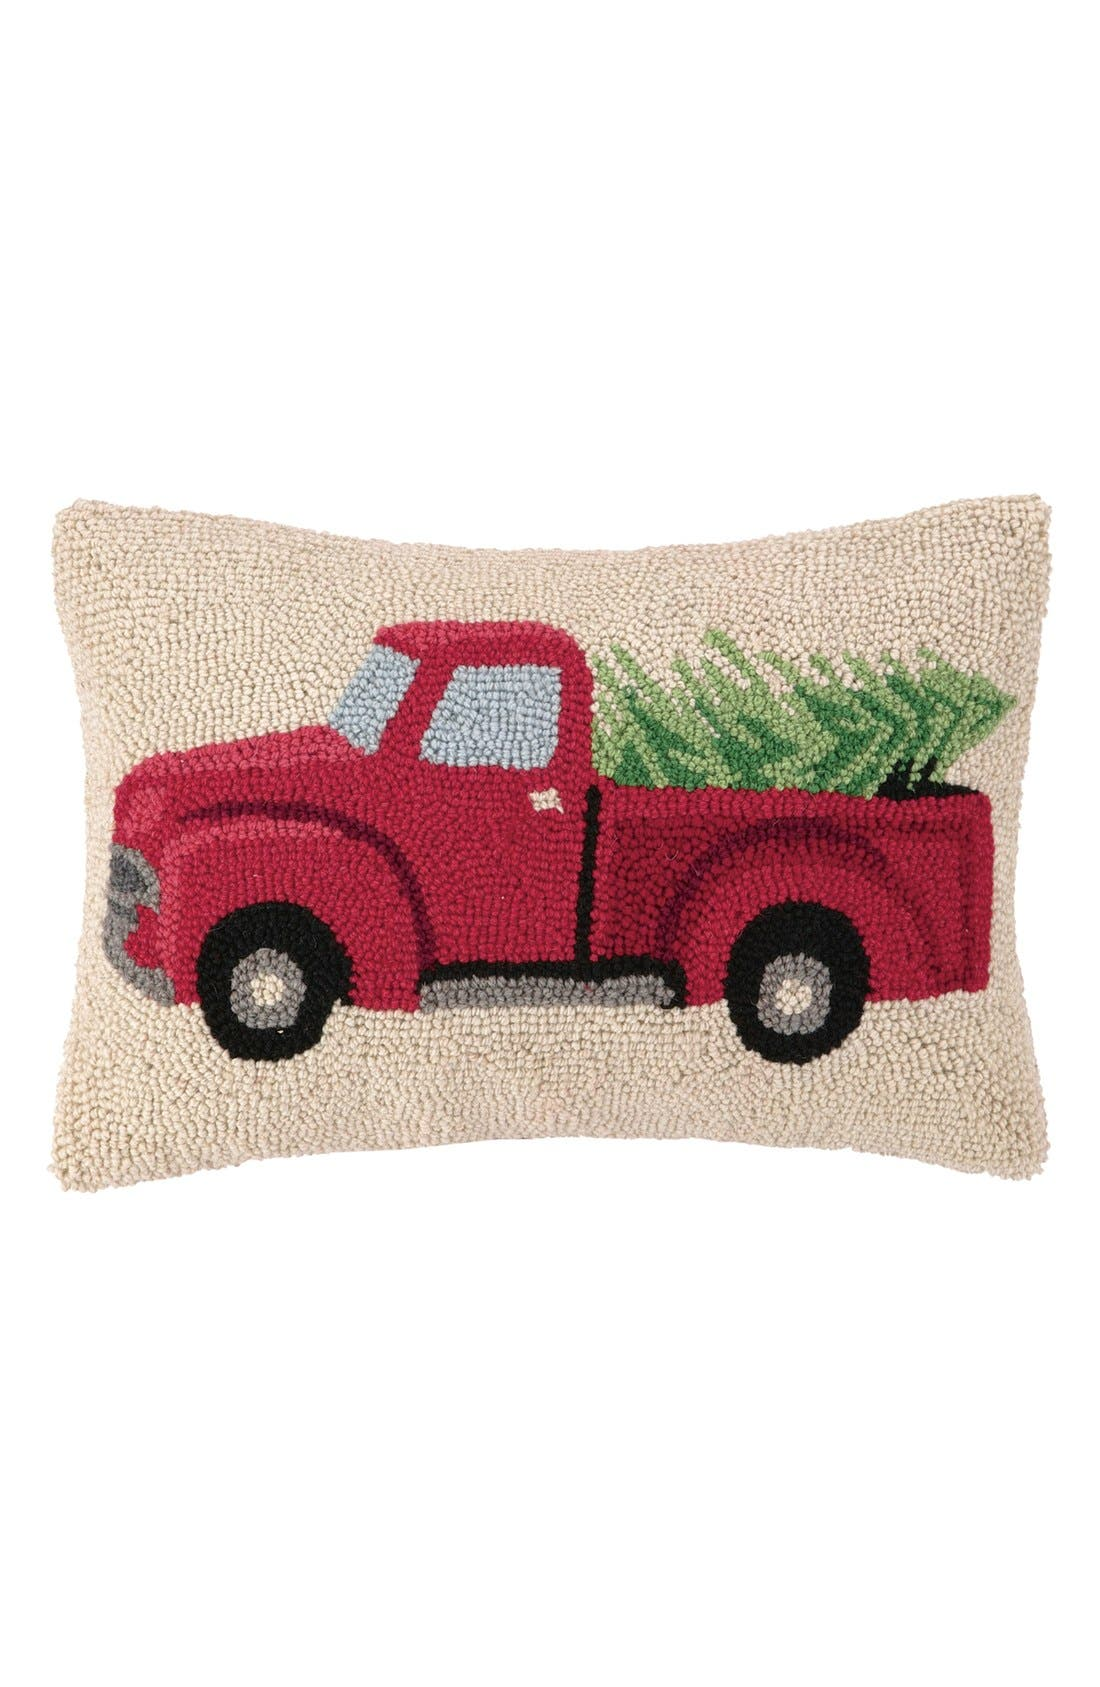 'Tree Truck' Pillow,                         Main,                         color, Red/ Beige